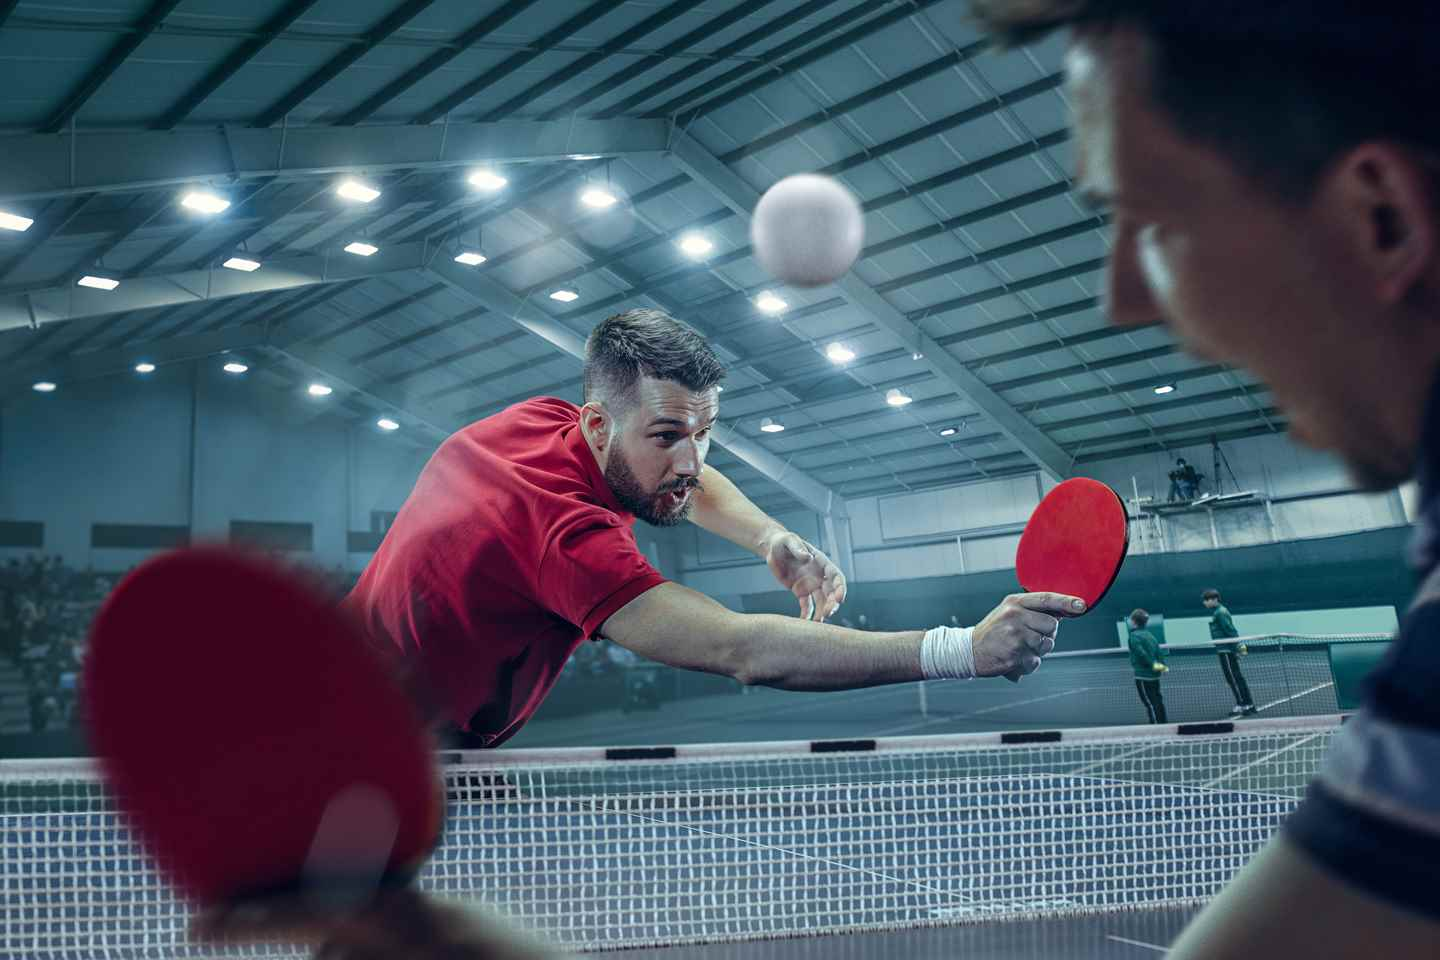 Best Table Tennis Rubber For Control And Spin